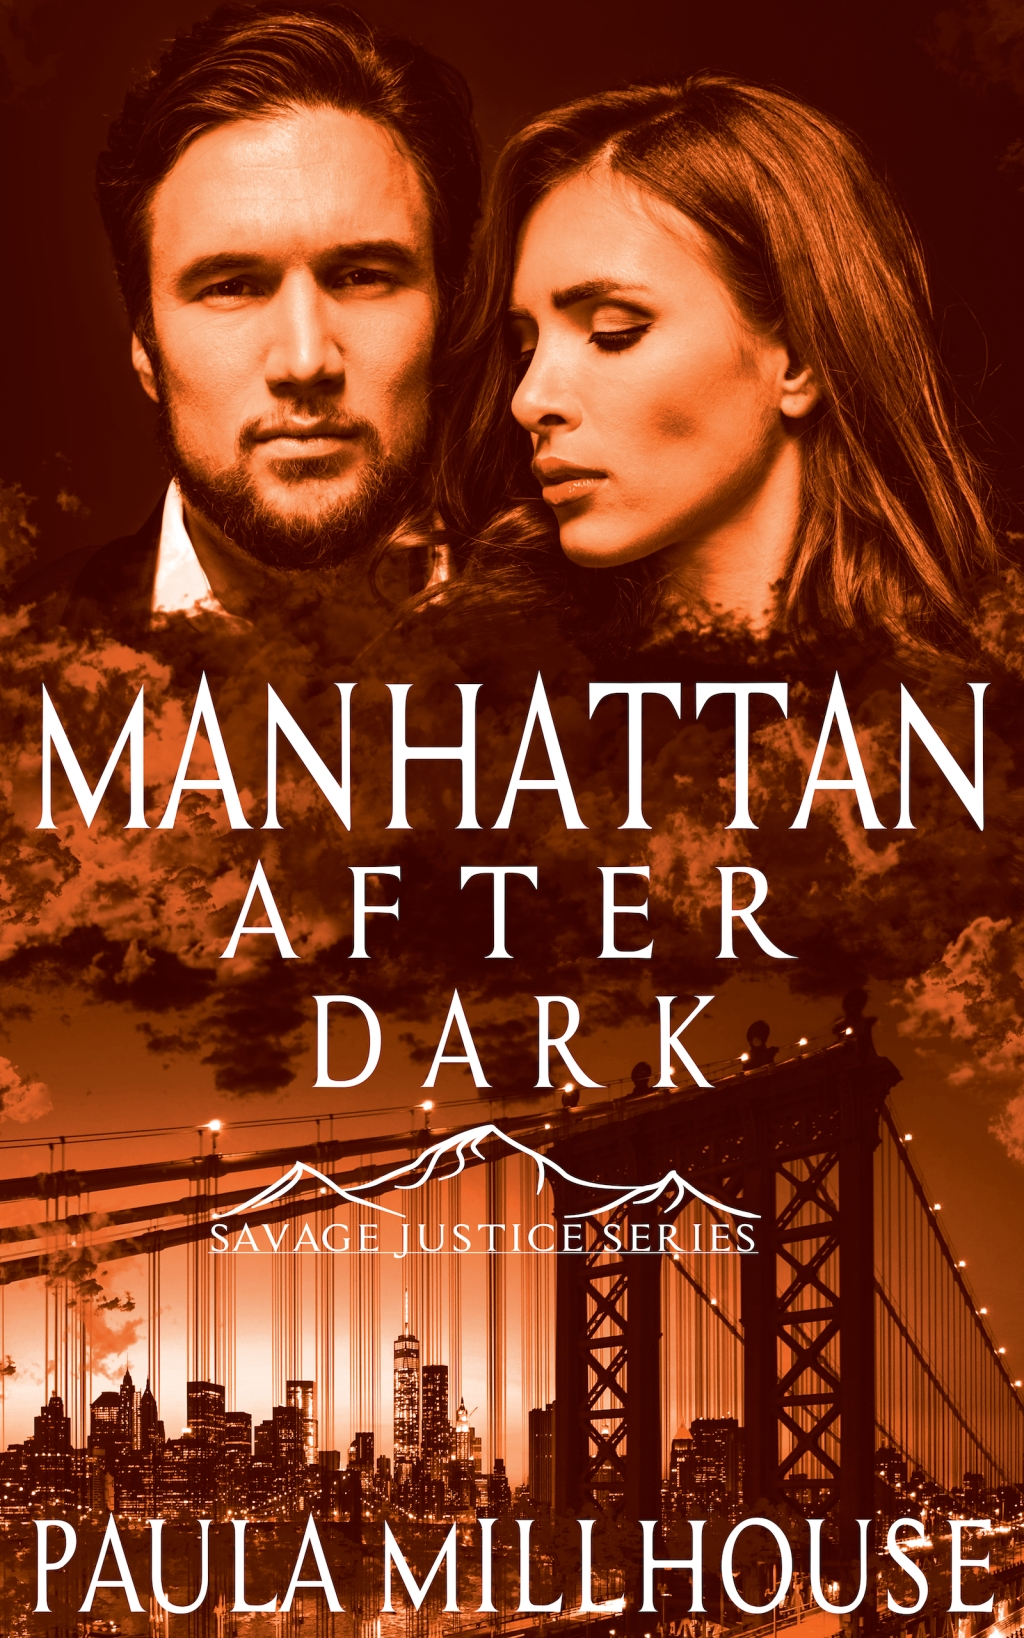 http://bit.ly/2RNIa74ManhattanAfterDark, romantic suspense thriller suspense crime murder fbi thriller vigilante justice thriller books twisted secrets merciful hot protector dangerous untouchable second chances mafia romance thriller romance Manhattan books protector series New York city romance law enforcement sex strong heroine romance anti hero romance